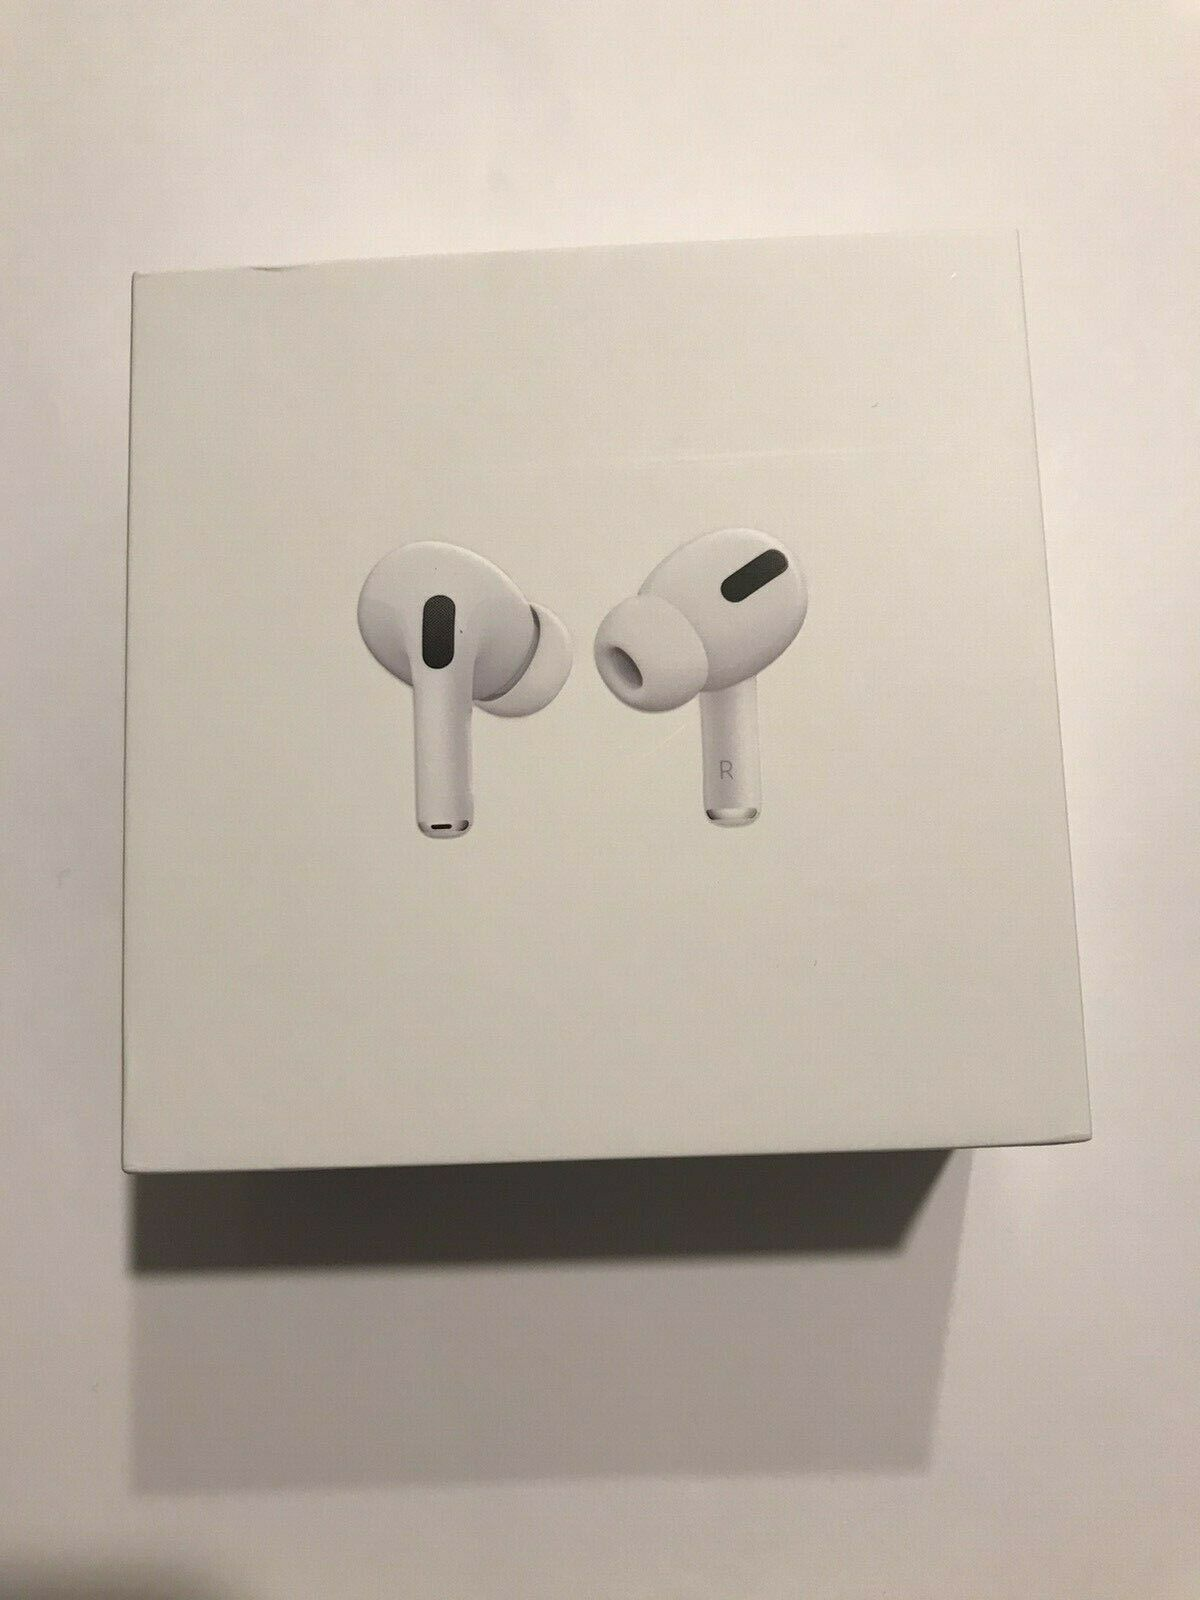 Apple Airpods Pro Empty Box With Charging Cable Manual Box Only Charging Cable Airpods Pro Its My Bday